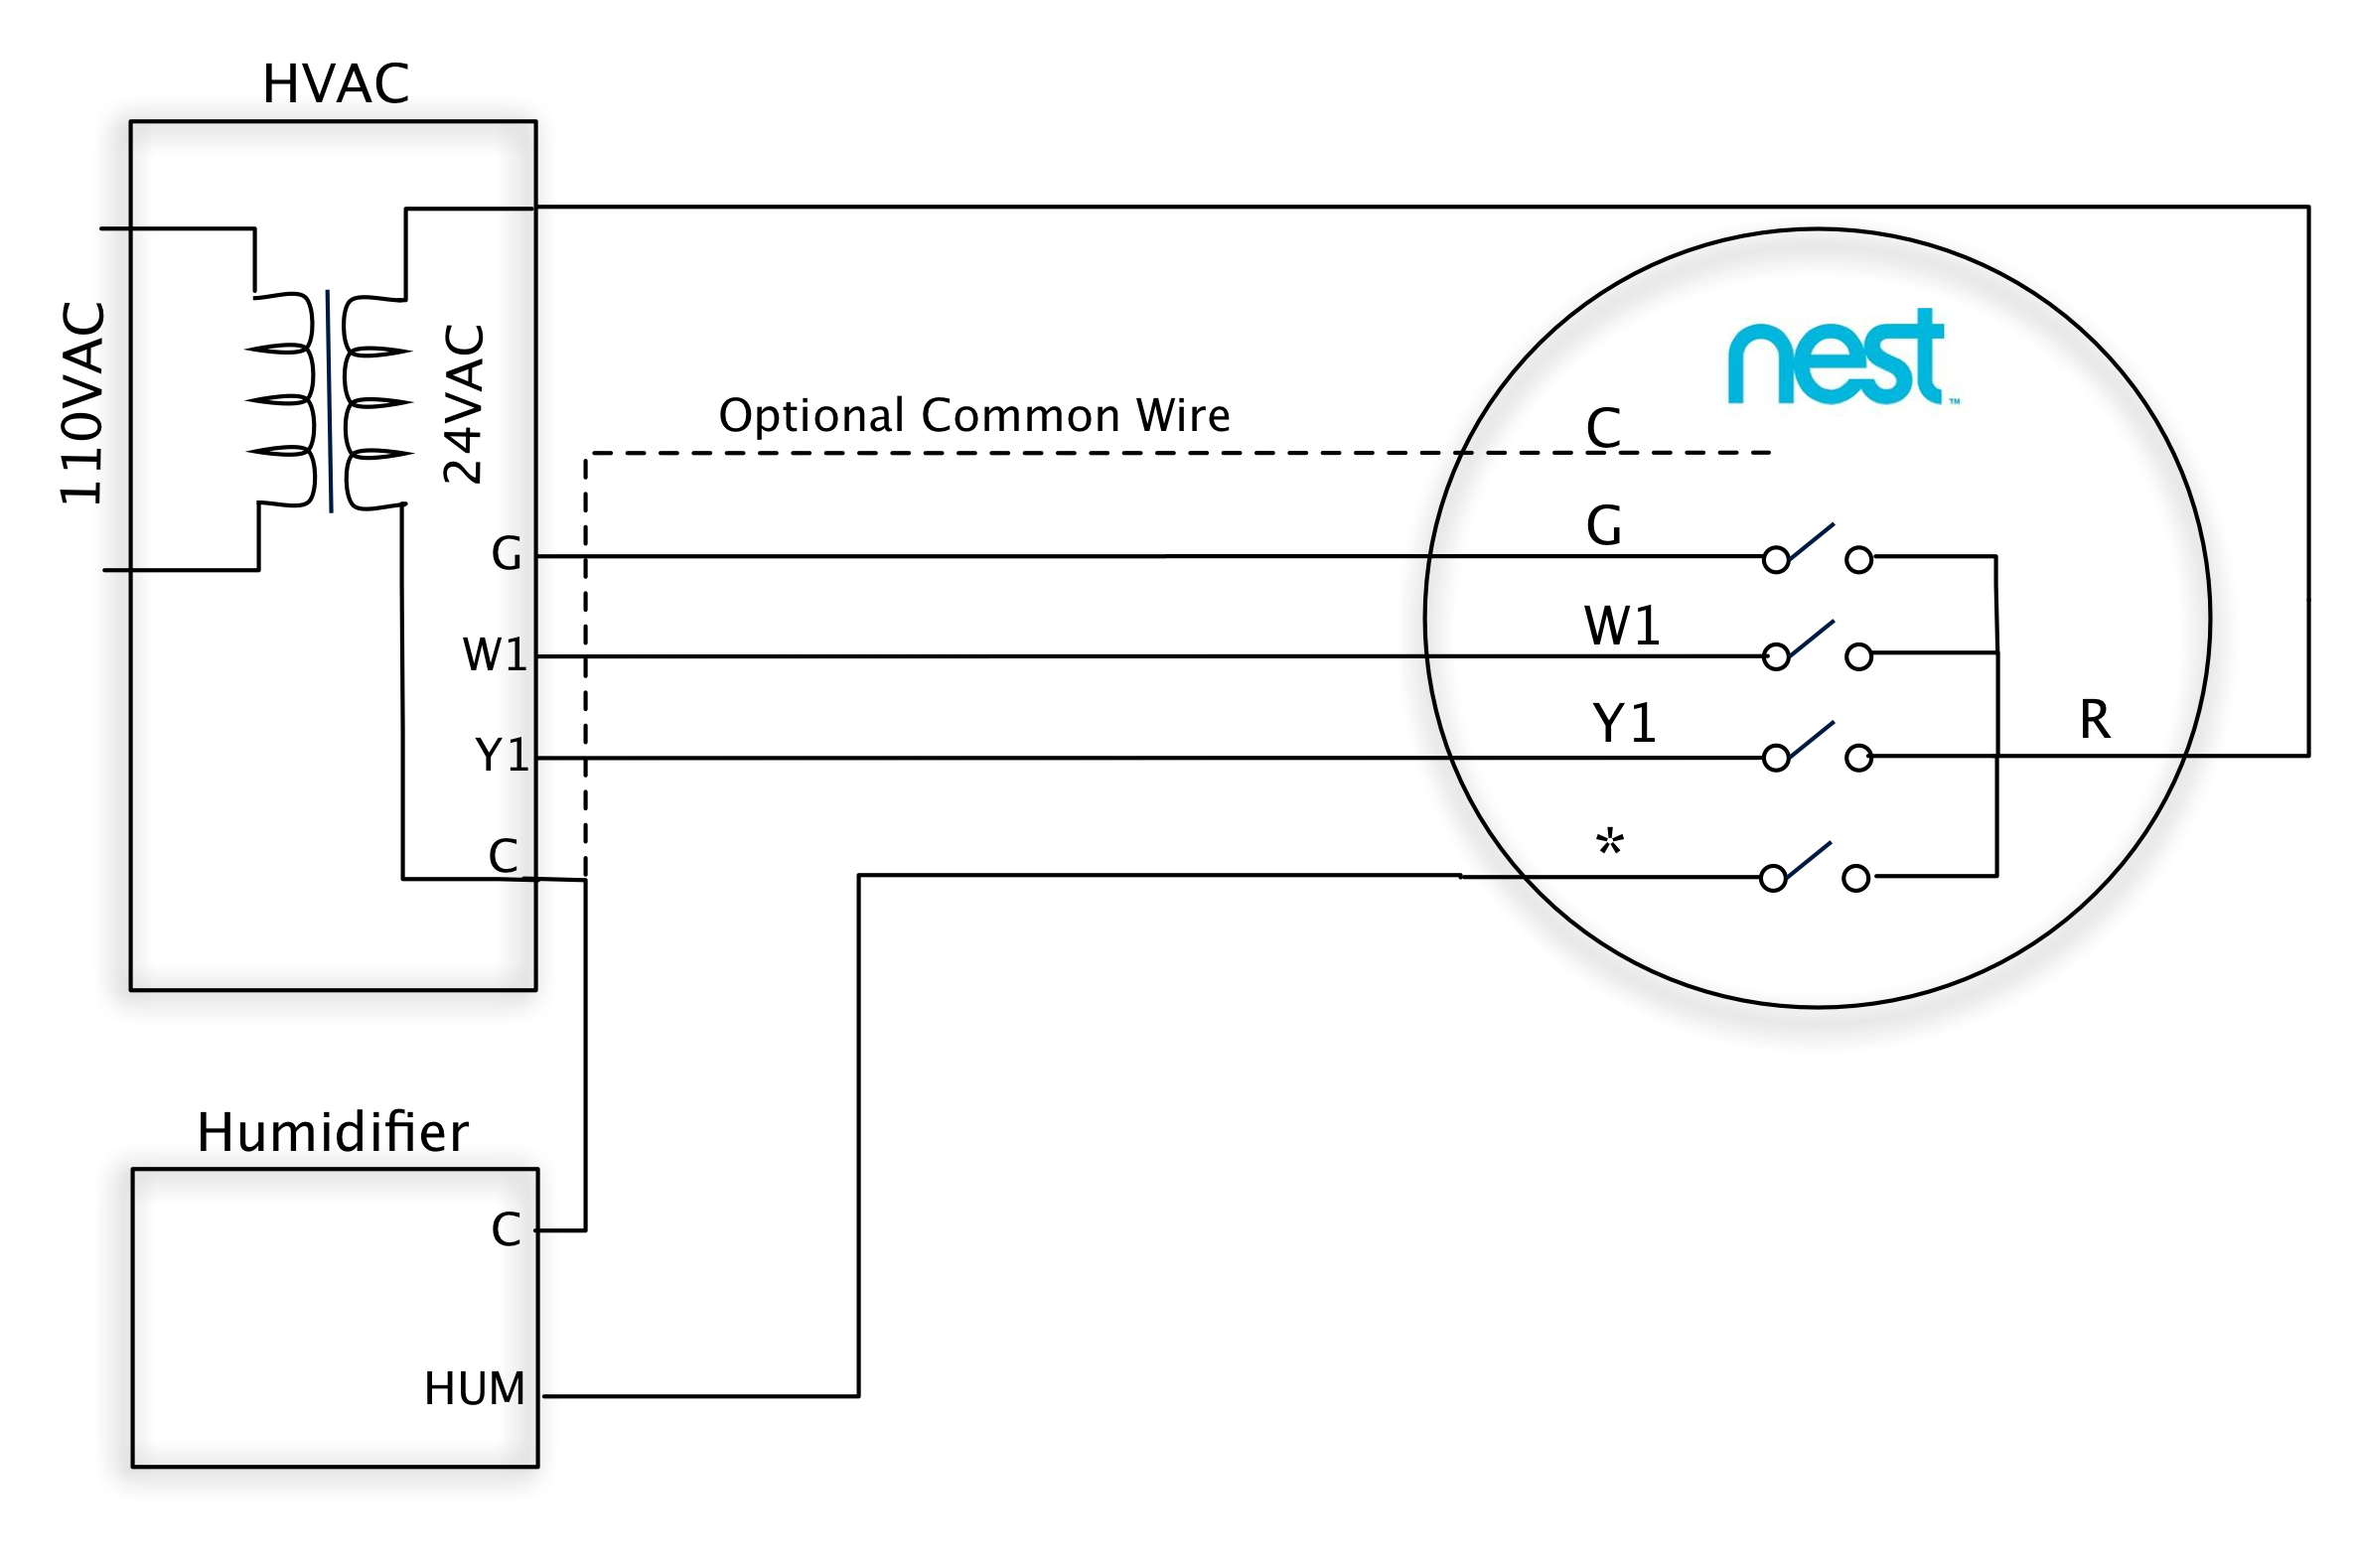 The nest wiring diagram wiring diagrams schematics advanced installation and setup help for help connecting humidifiers and dehumidifiers to the 2nd and 3rd gen nest thermostat the nest wiring diagram sciox Images